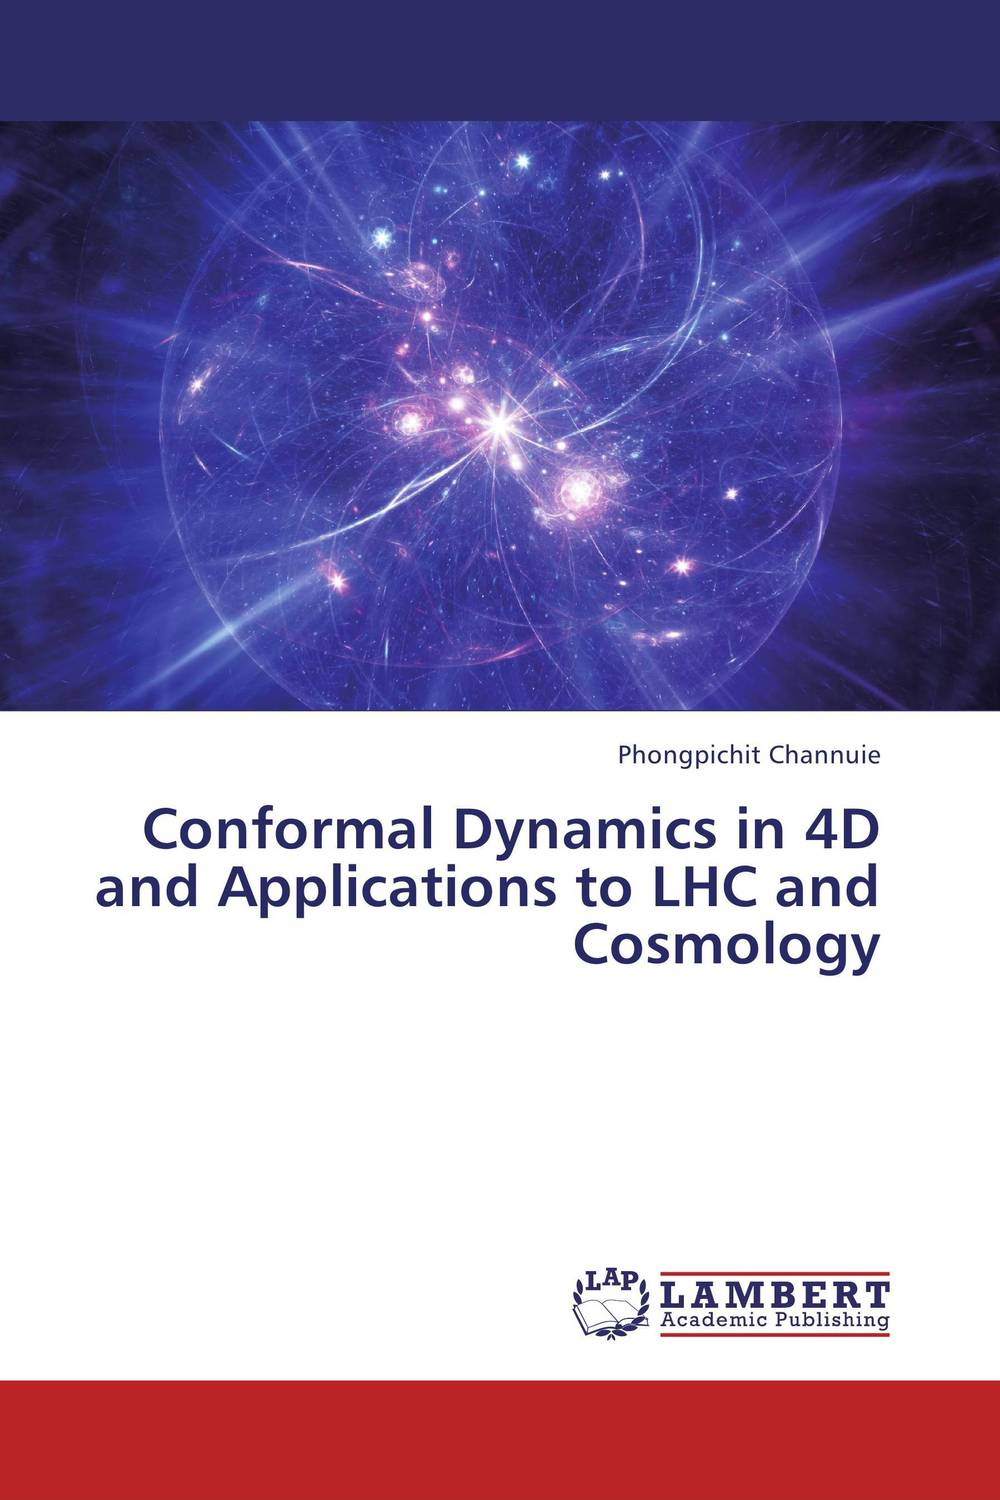 Conformal Dynamics in 4D and Applications to LHC and Cosmology muhammad shahbaz exploring dynamics of l2 motivation